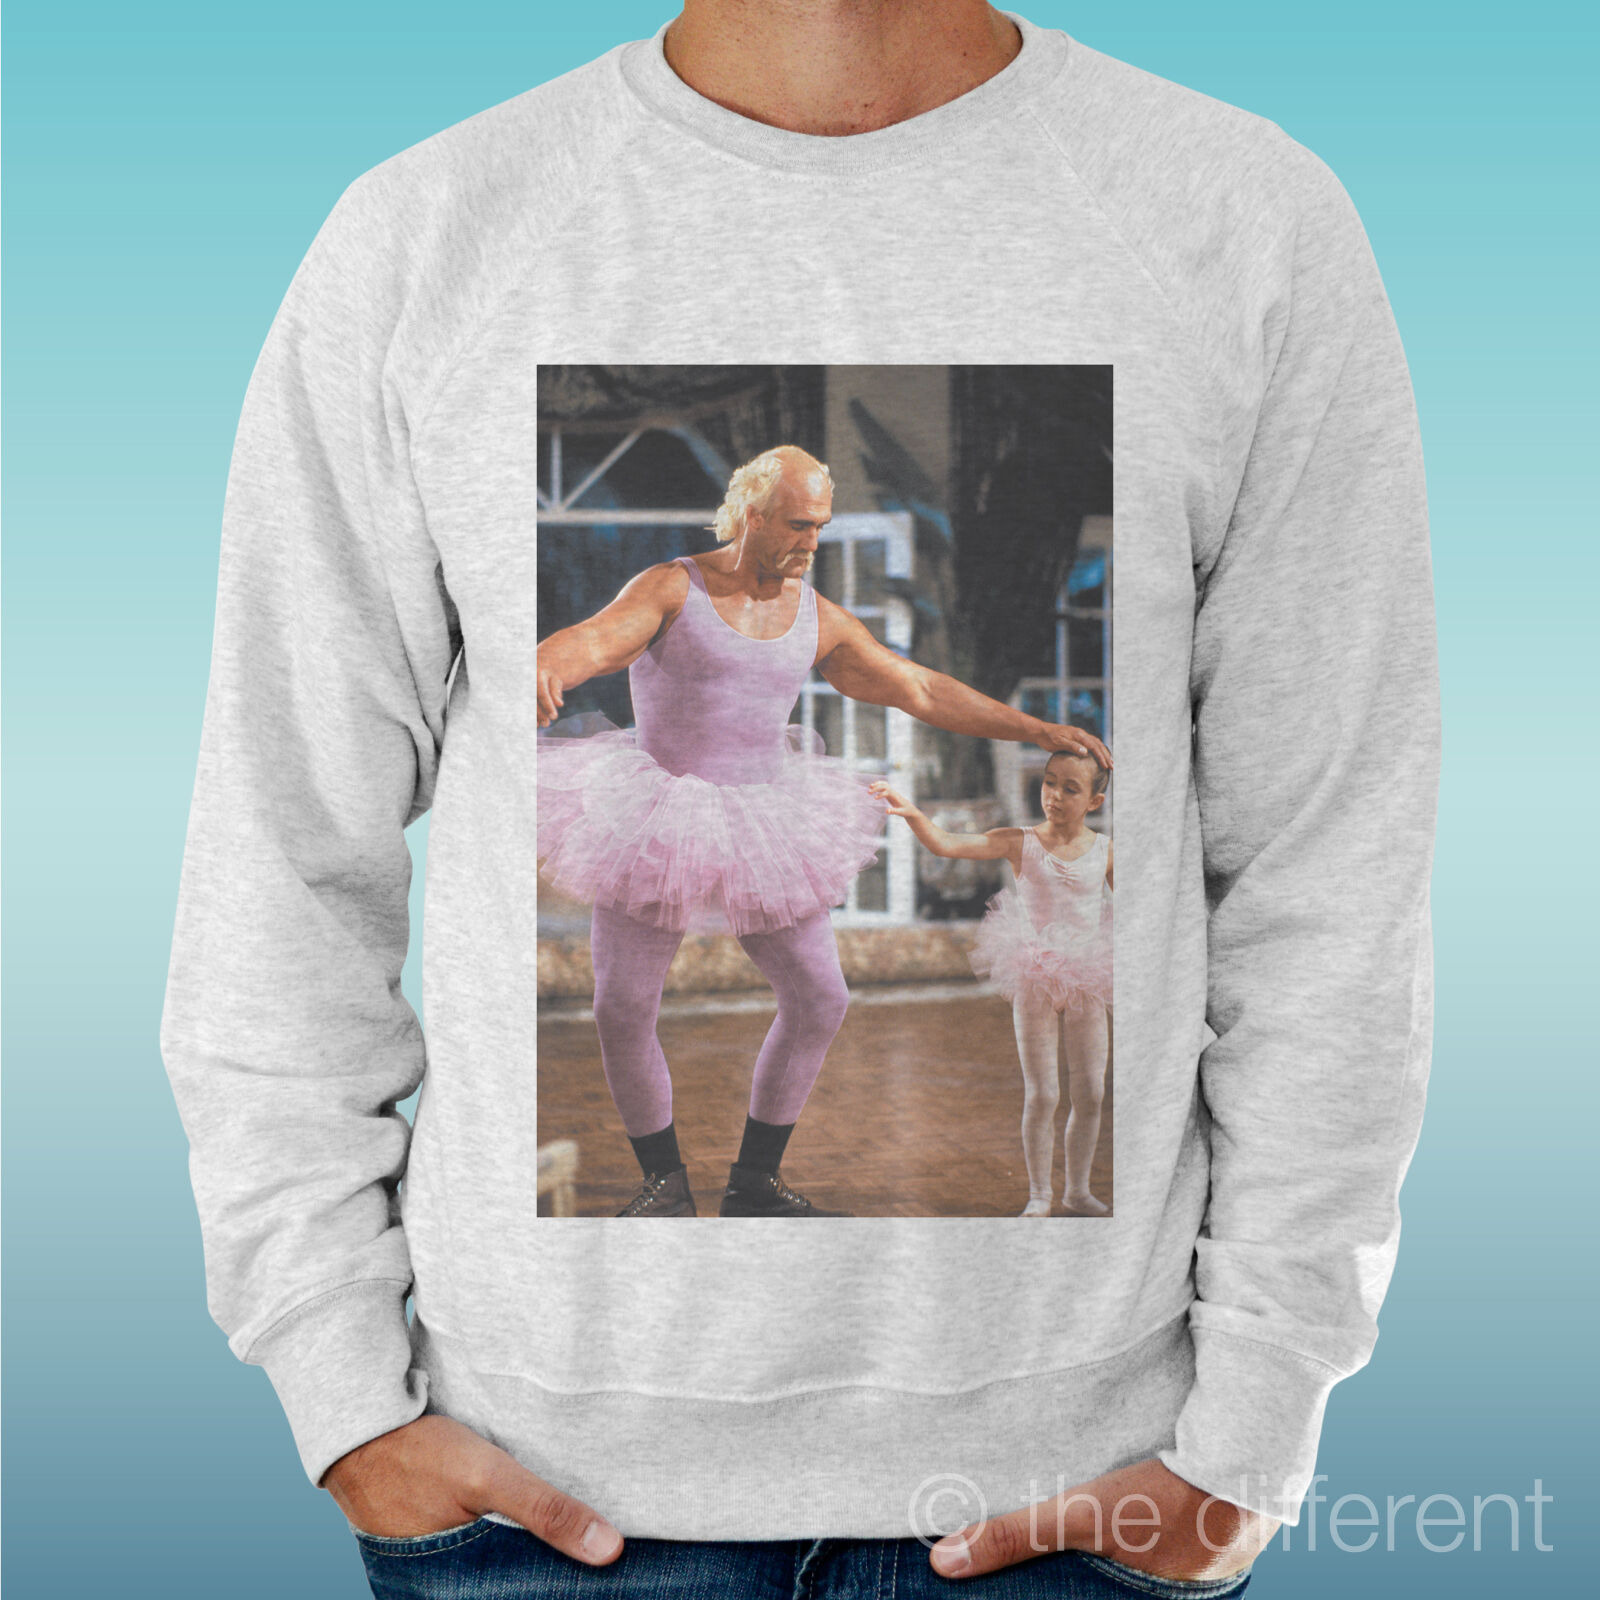 MEN'S SWEATSHIRT LIGHT SWEATER LIGHT GREY GREY   HULK HOGAN BALLET